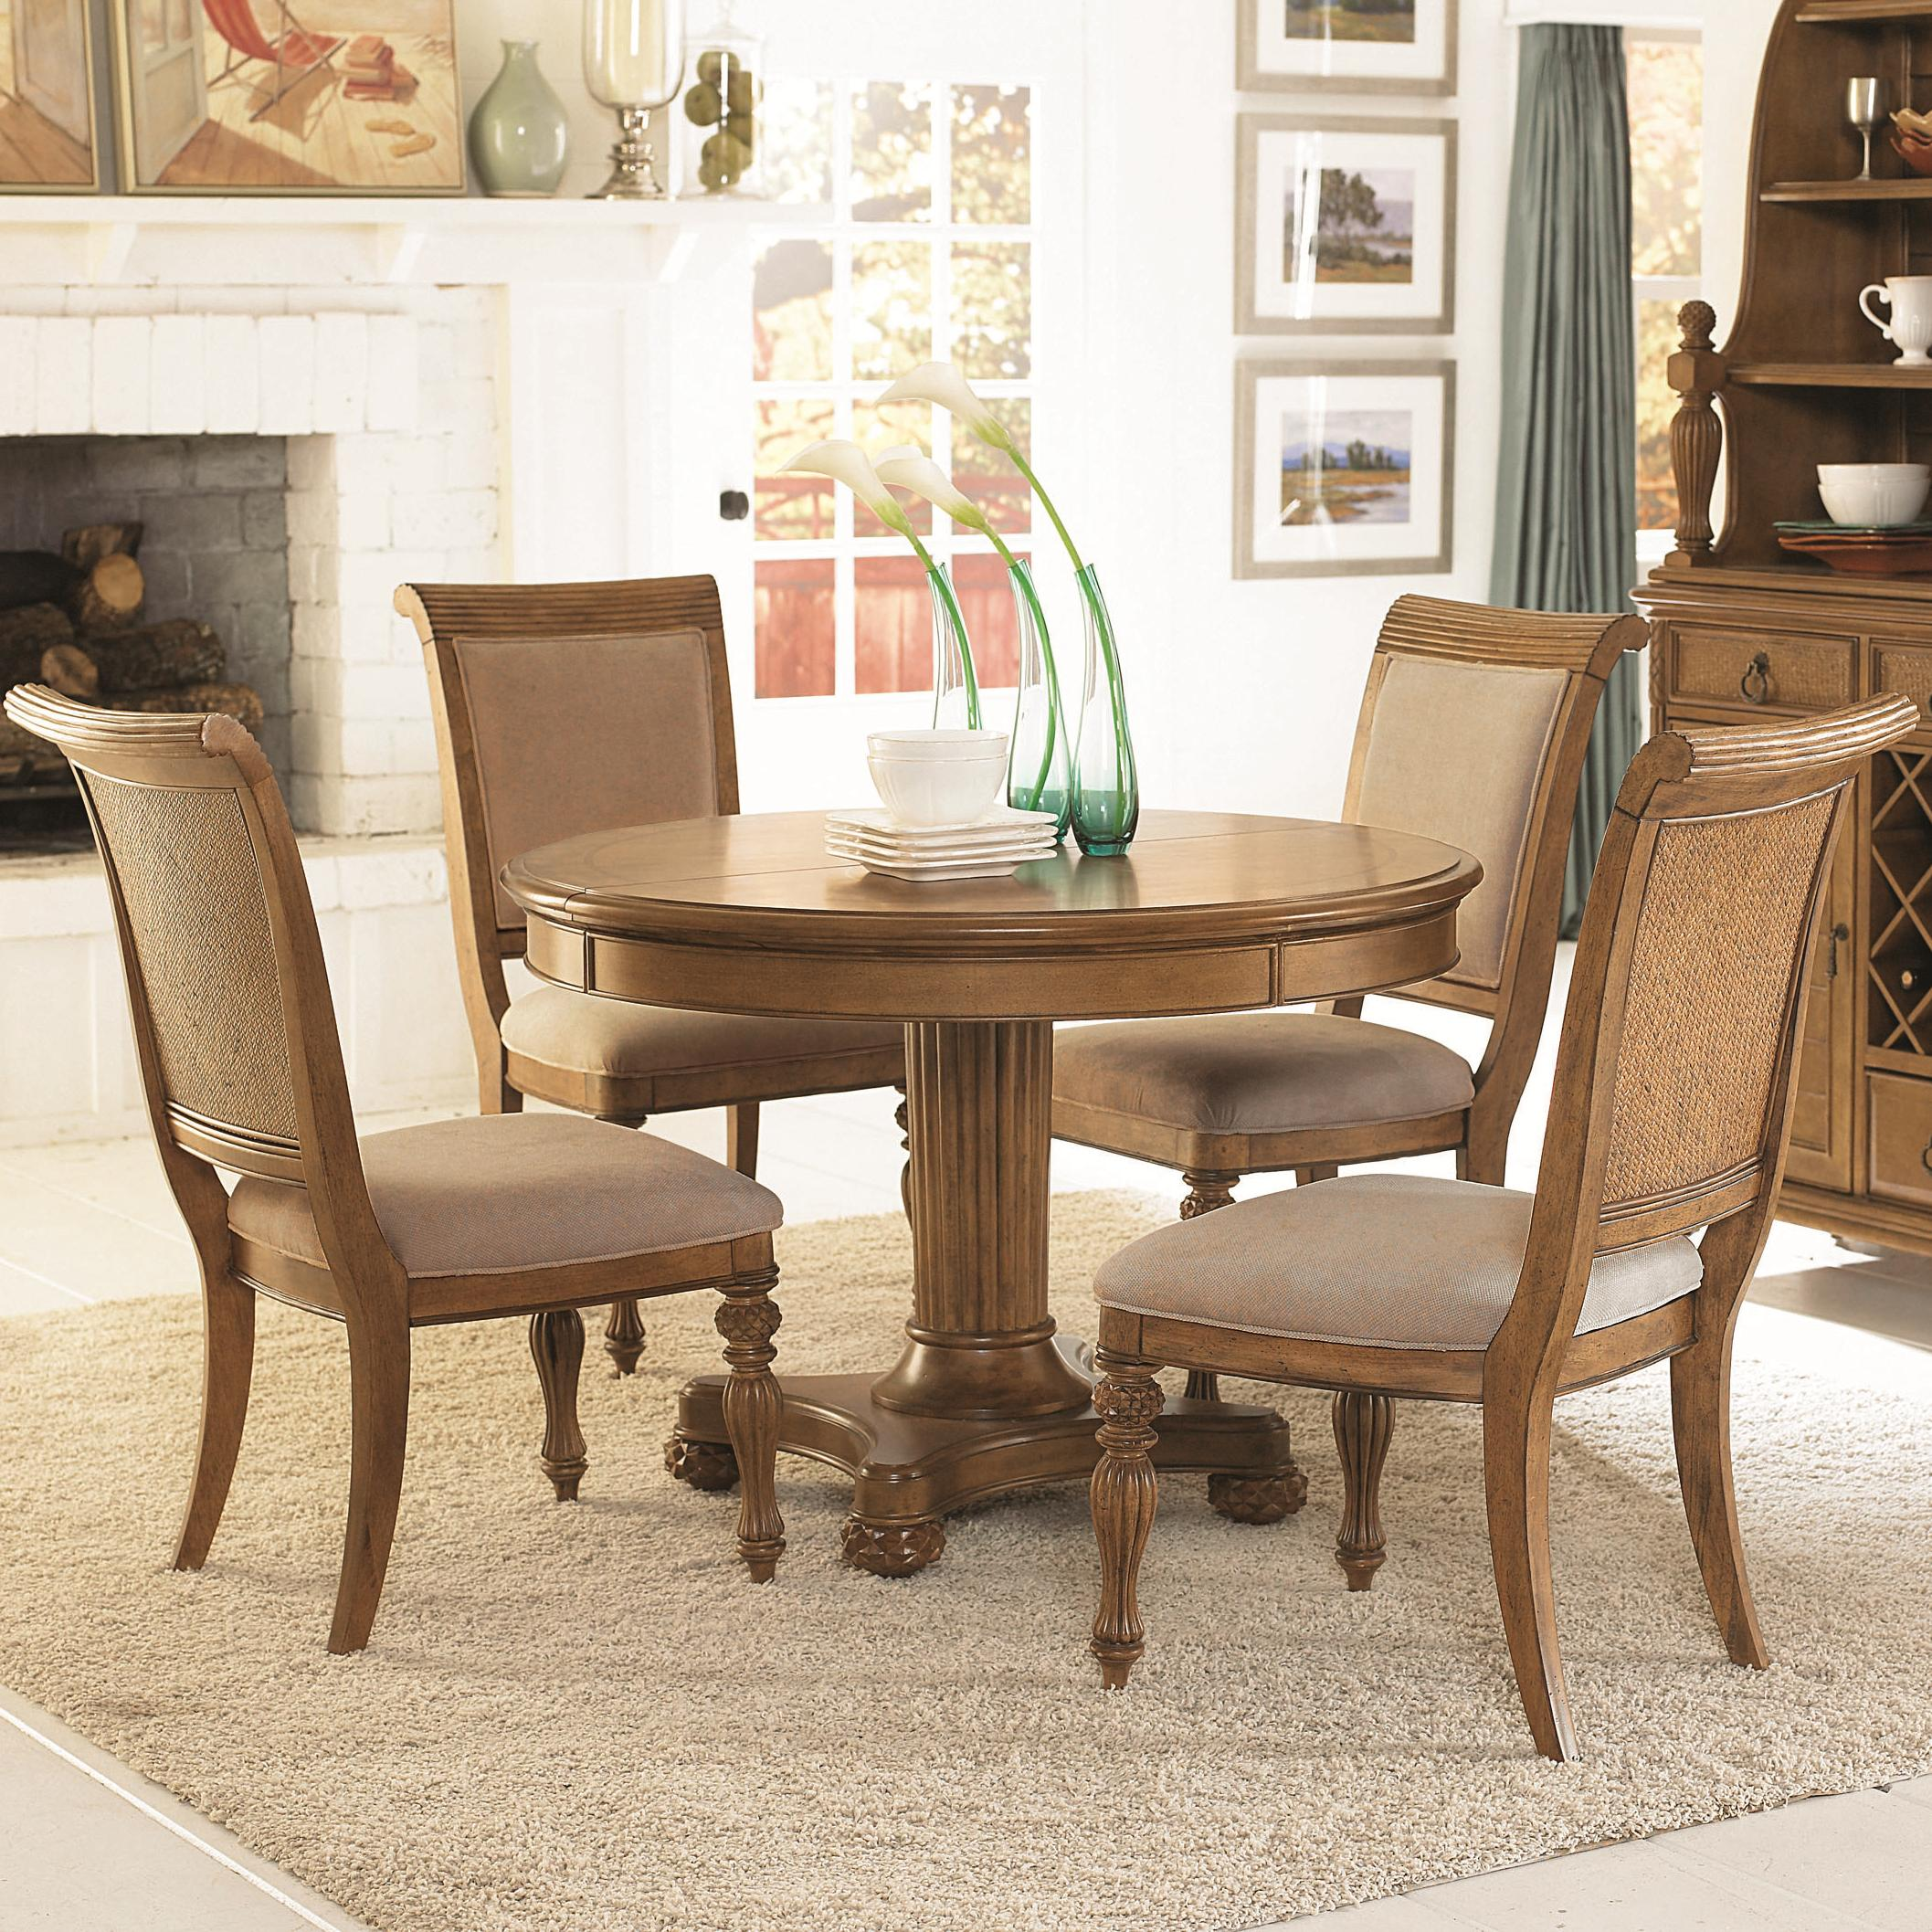 Image of: upholstered dining chair design